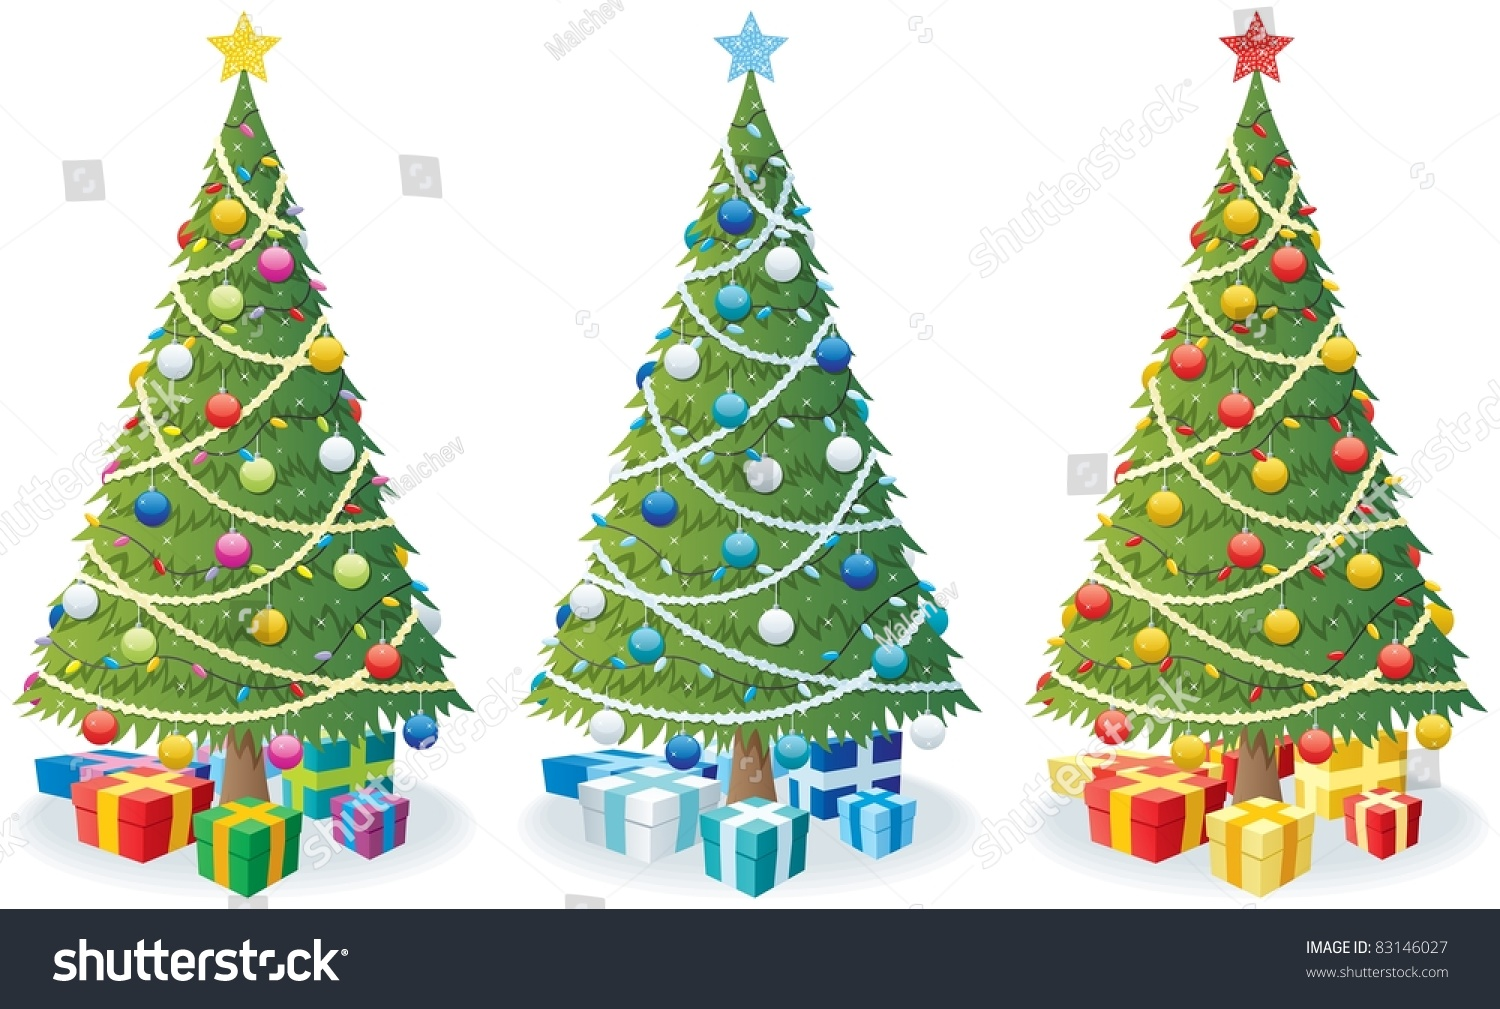 Cartoon Illustration Christmas Tree 3 Color Stock Vector 83146027 ...